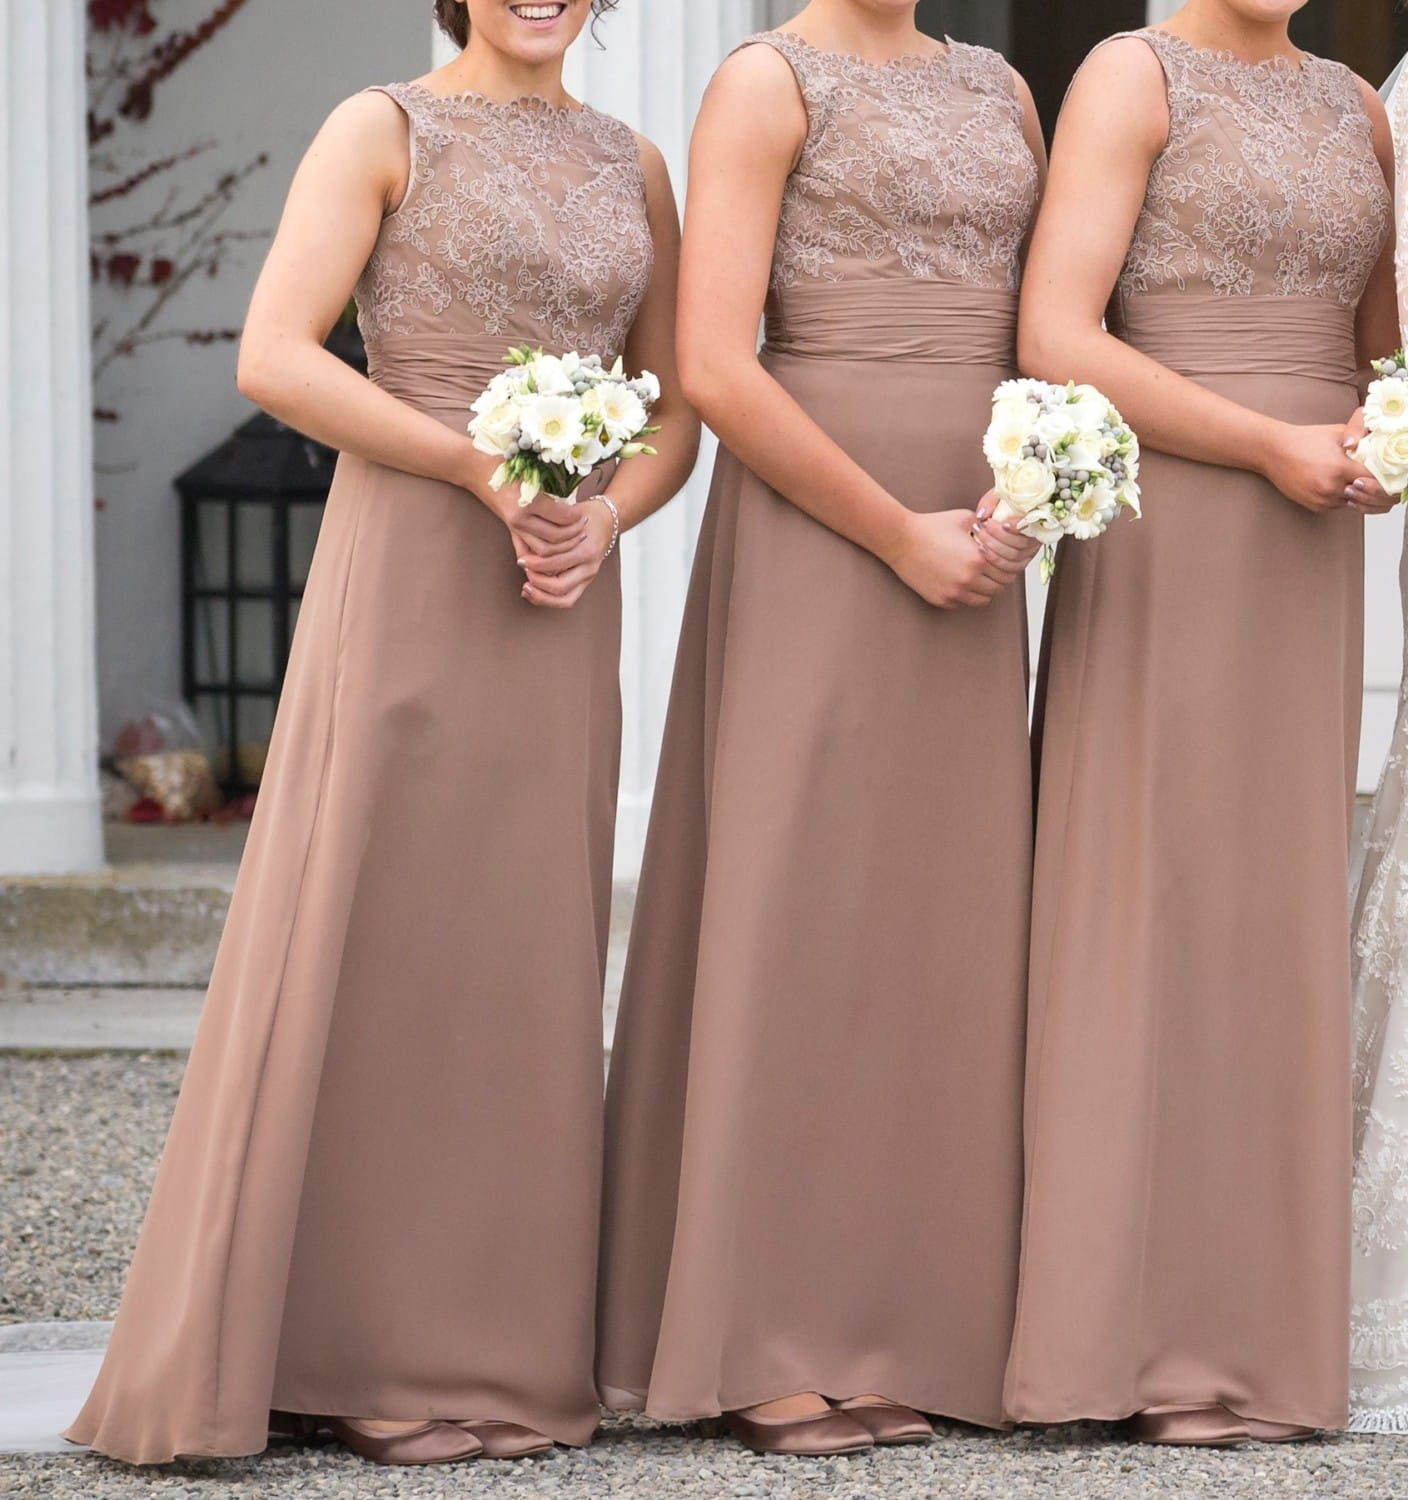 Three bridesmaids dresses sell my wedding dress online for Sell wedding dress online